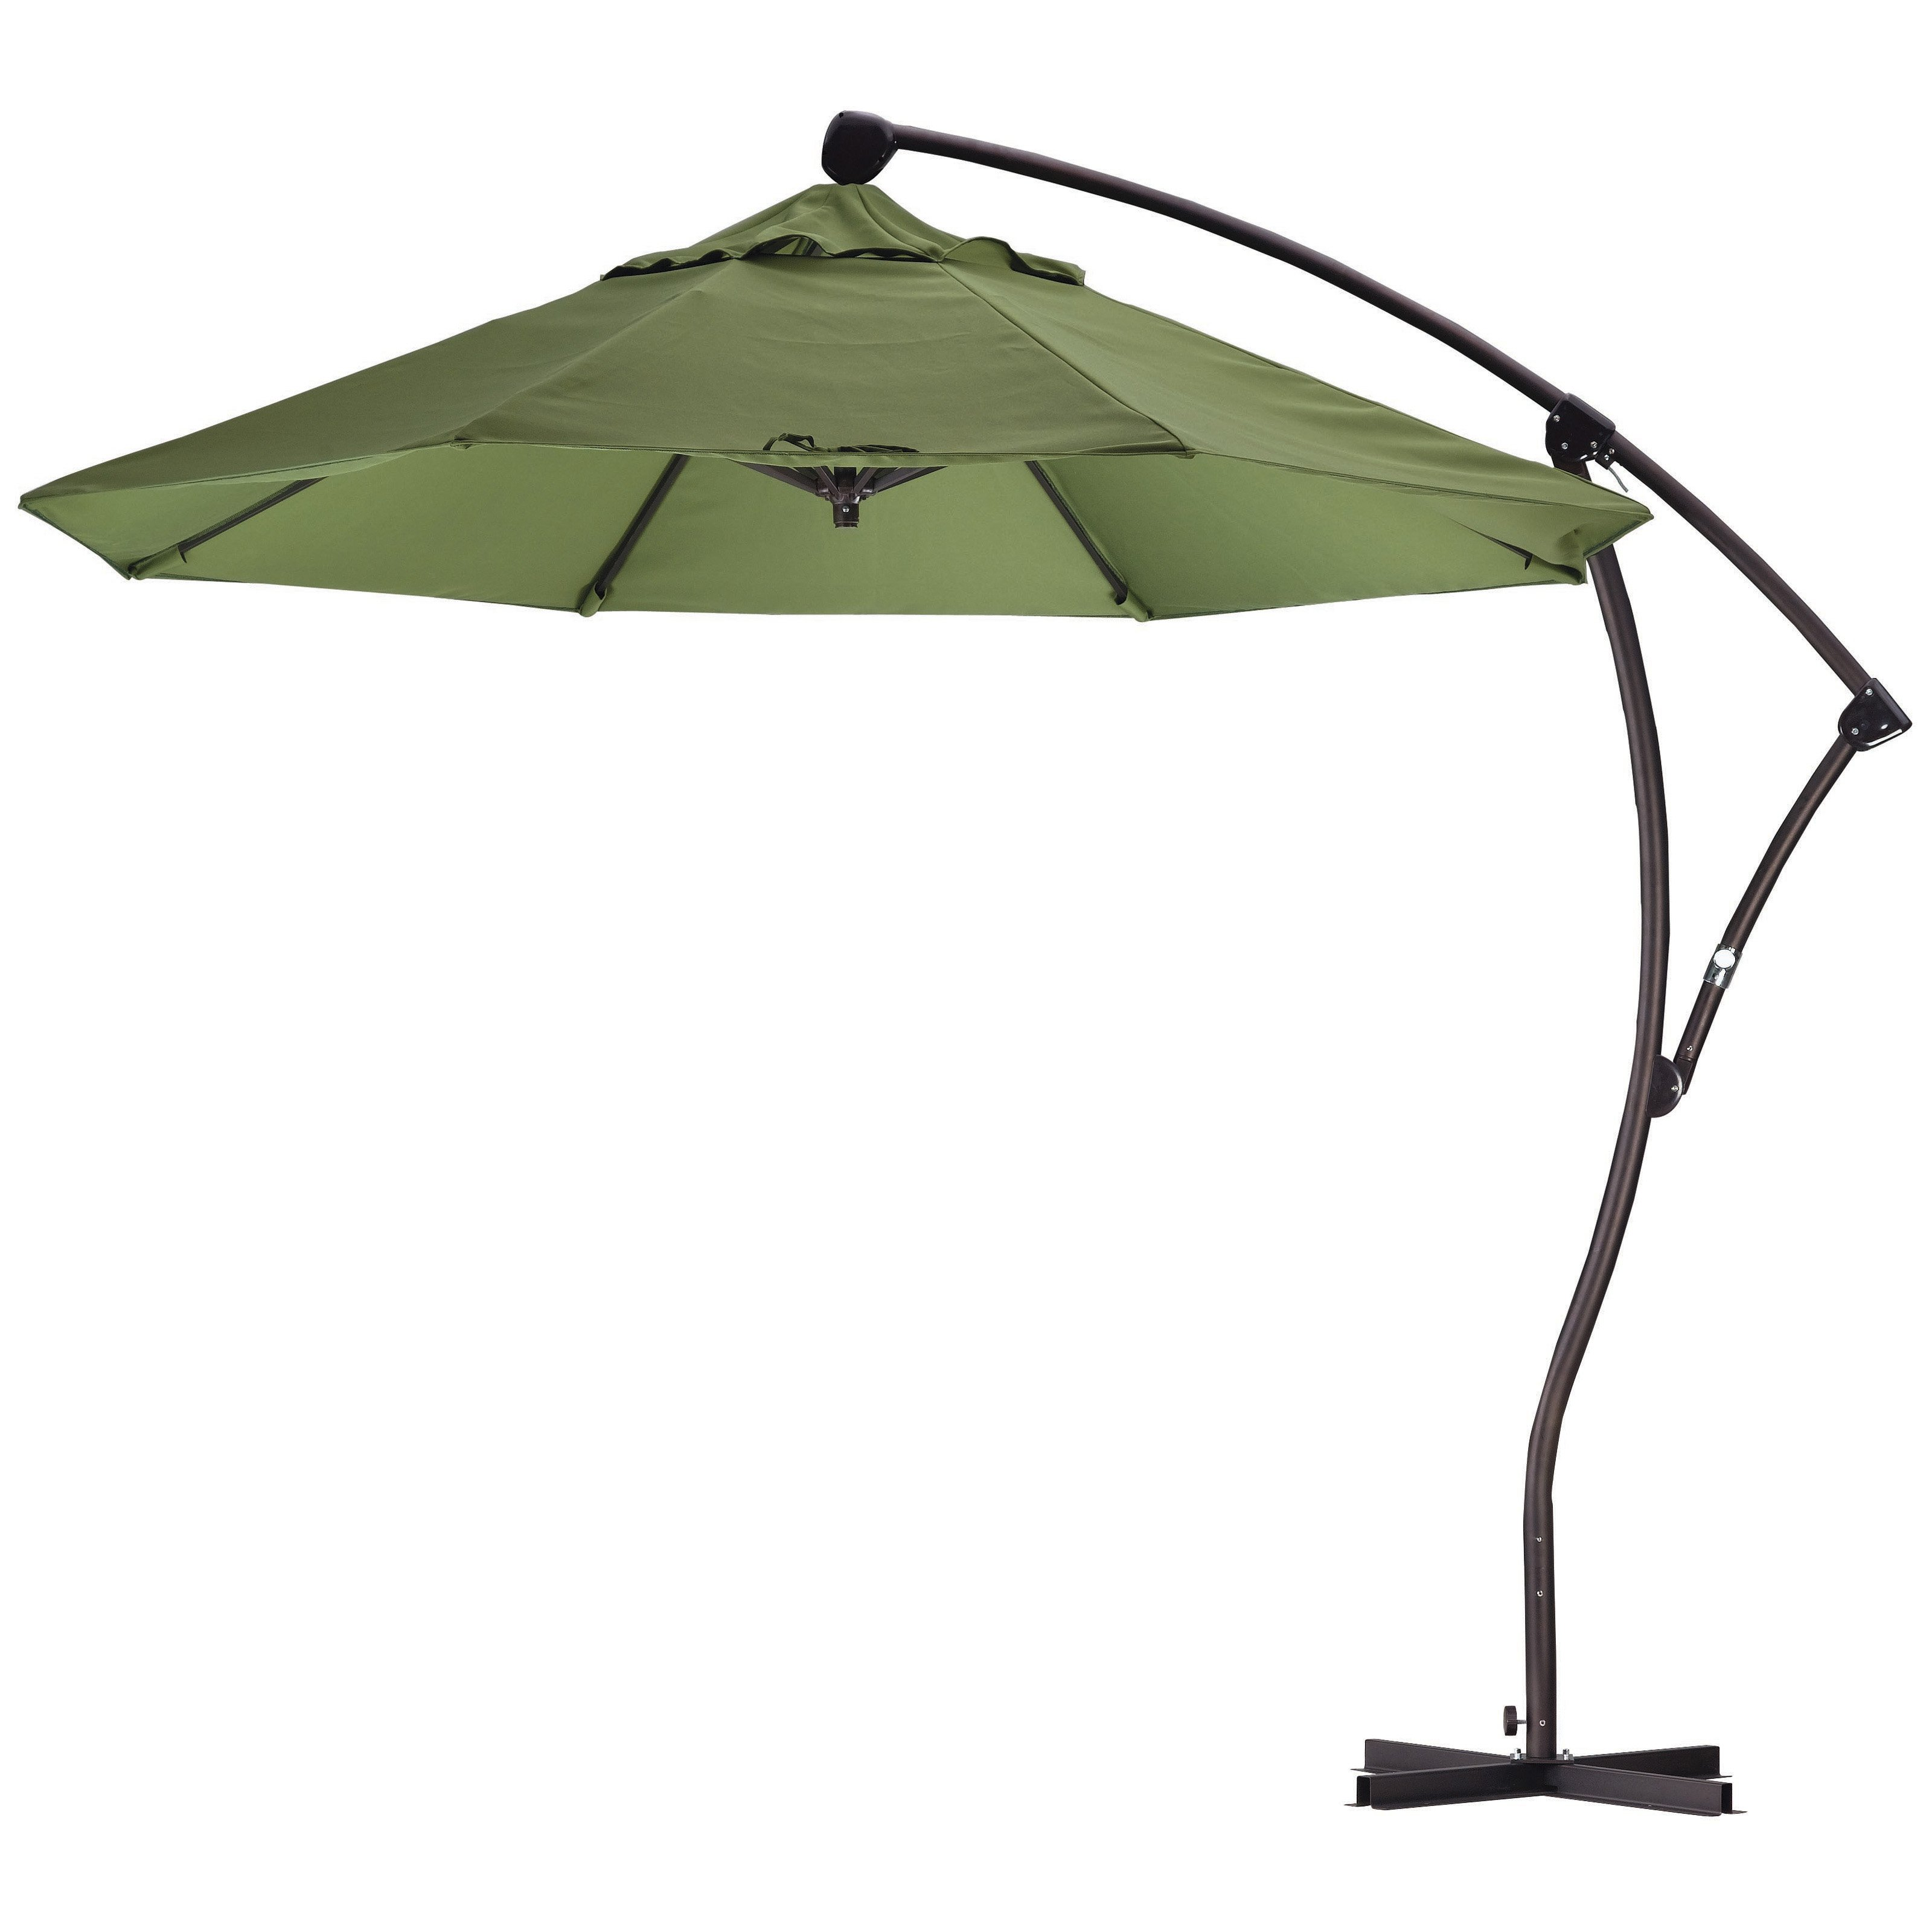 Best square offset patio umbrella | hayneedle ootvgsm